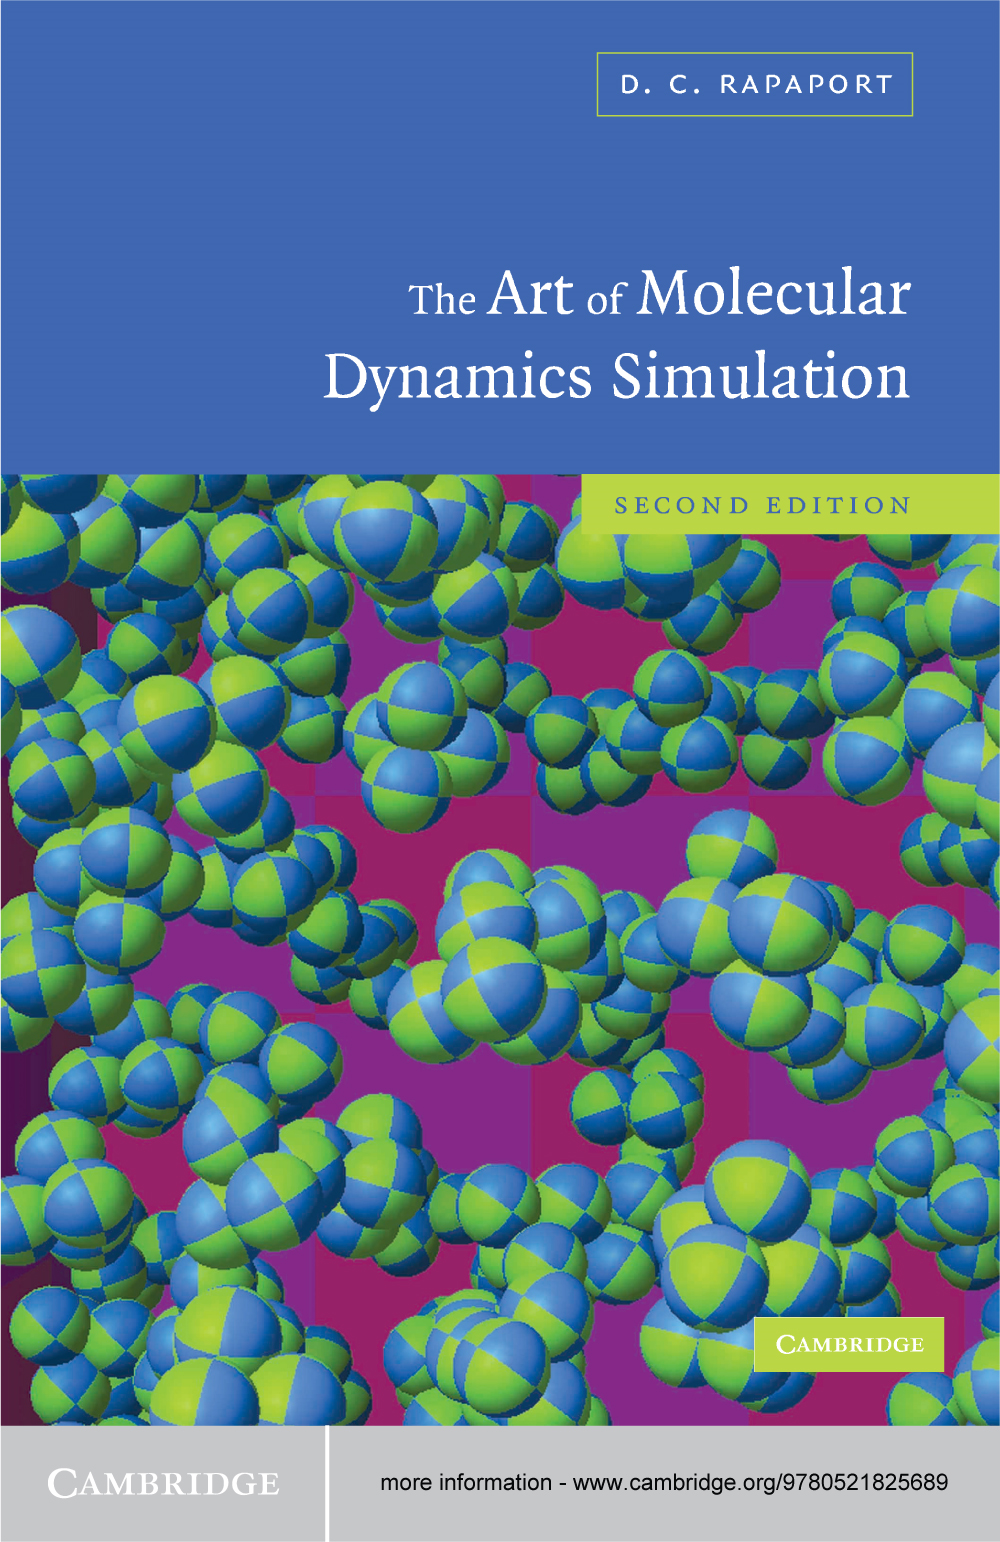 The Art of Molecular Dynamics Simulation